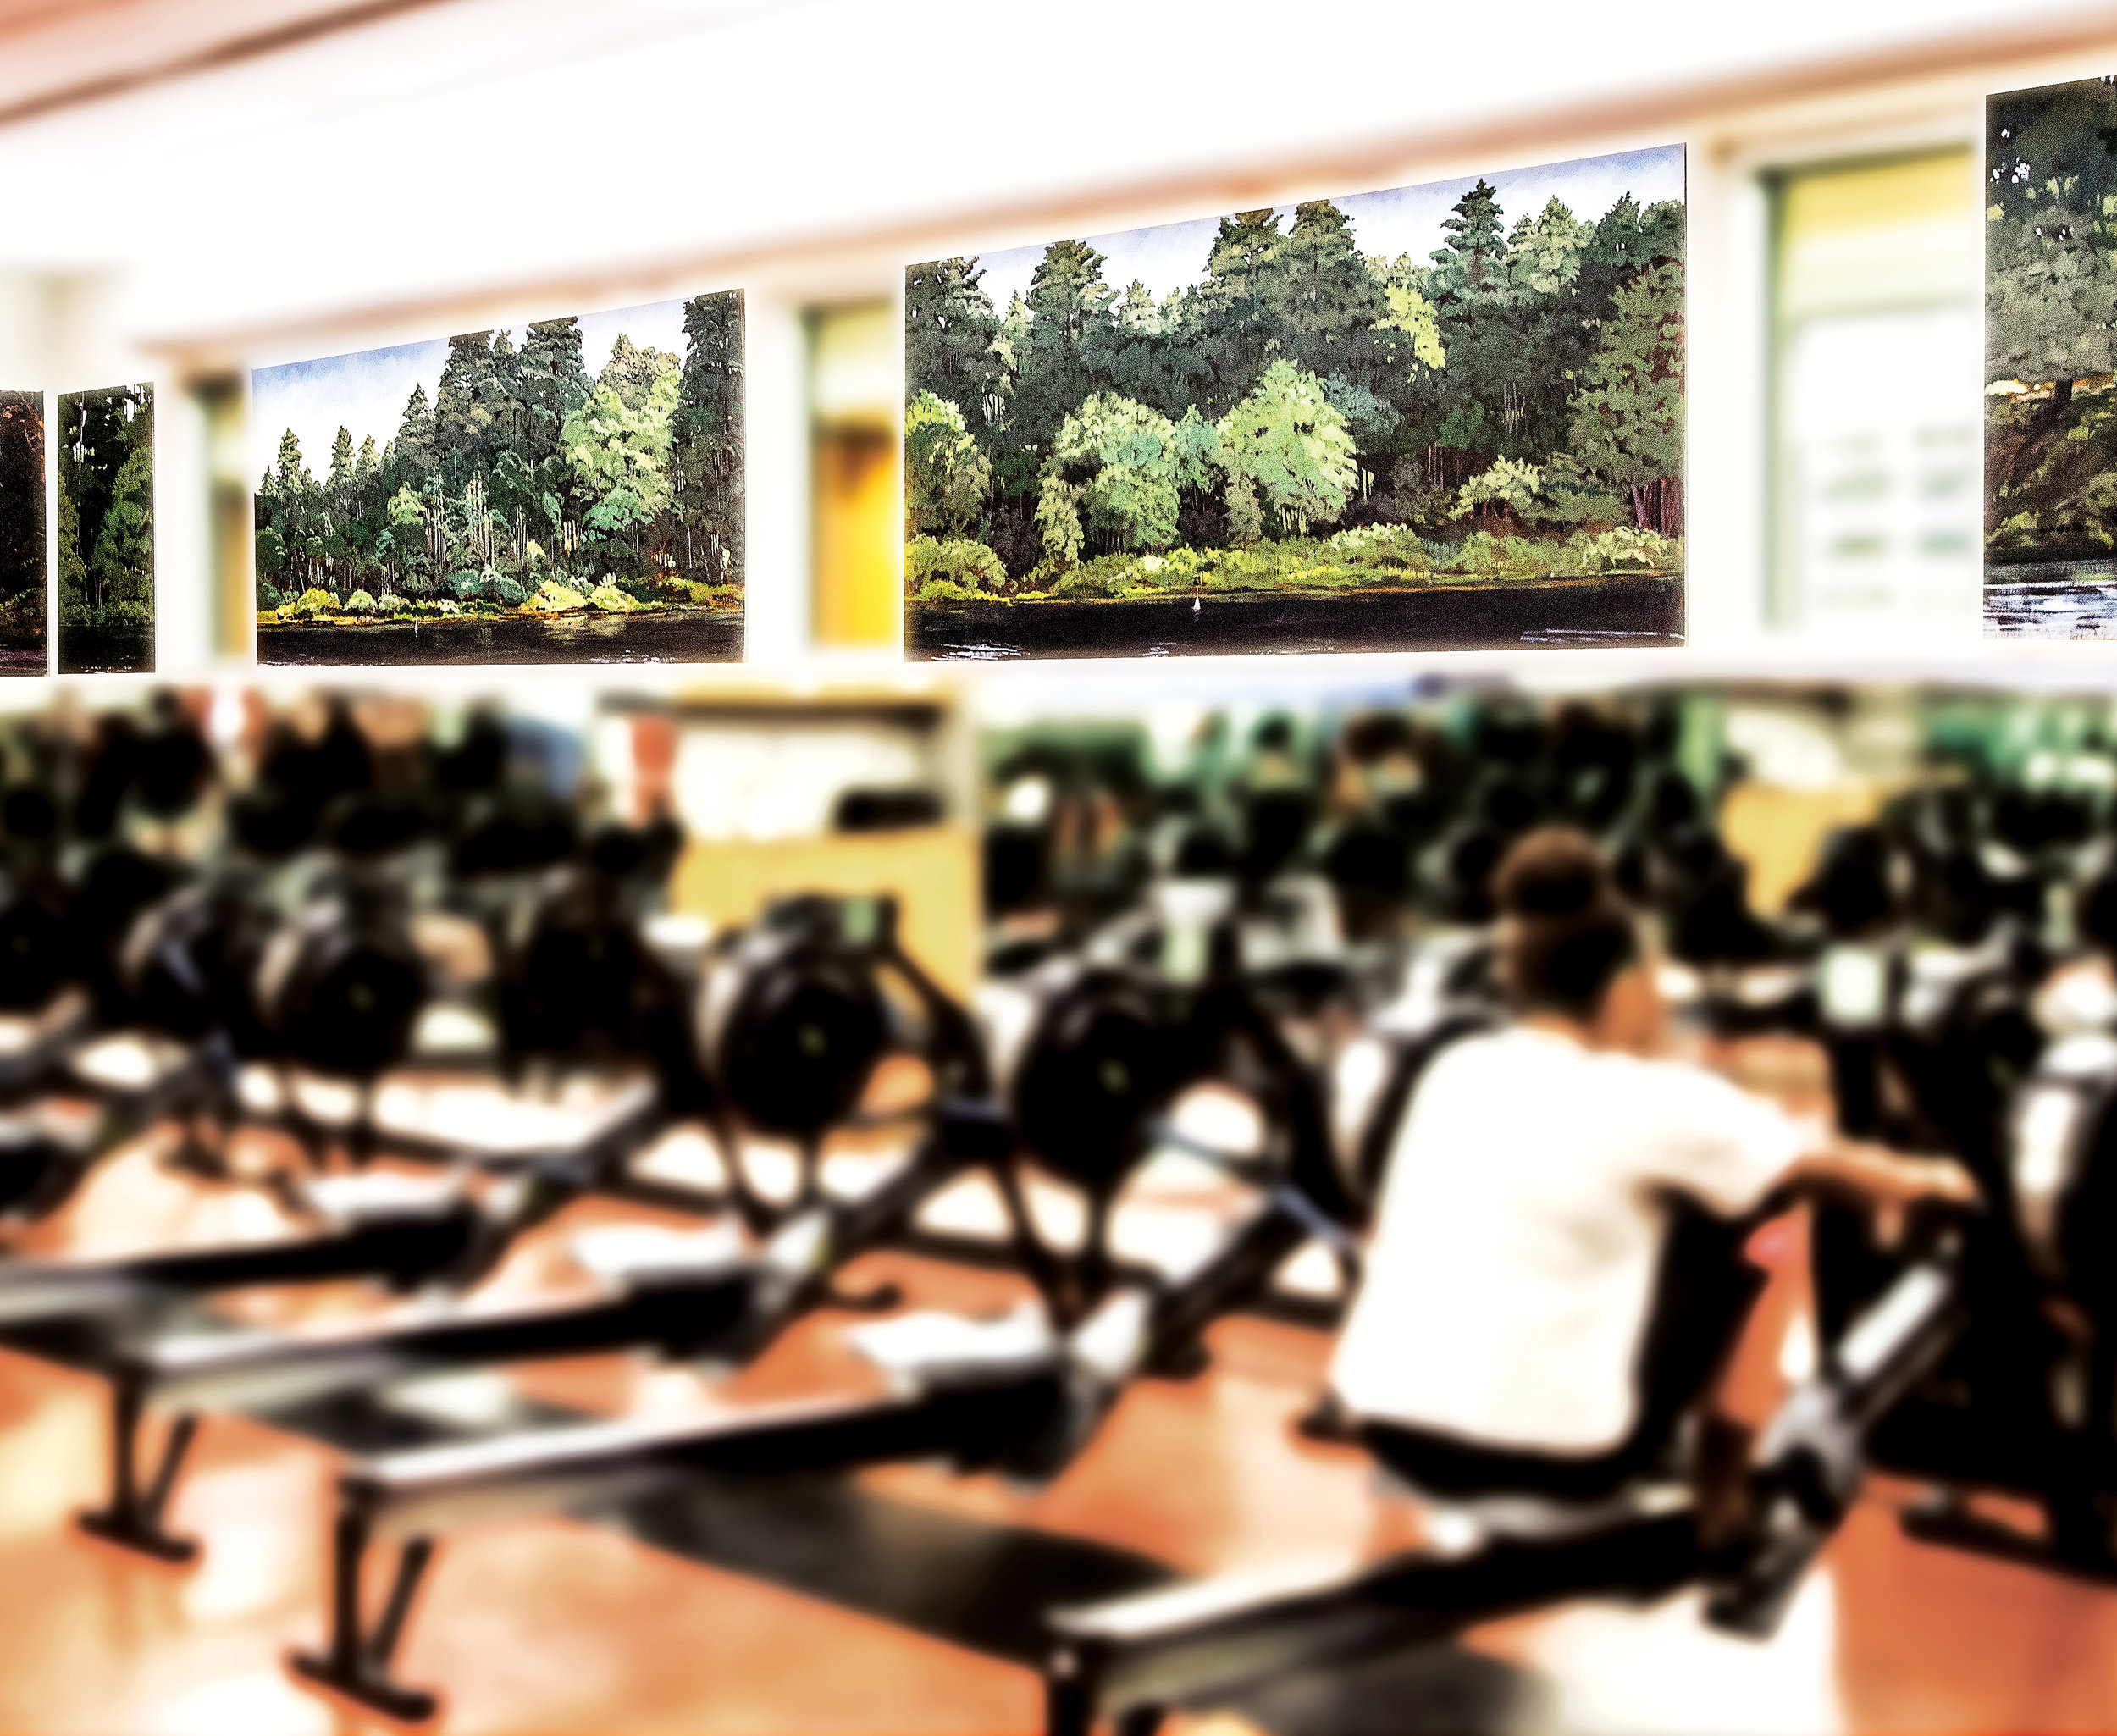 Turkey Pond Mural   Colin Callahan   (Oil on Canvas)   In 2008, Arts Department Head Colin Callahan made it possible for SPS rowers to feel like they're on Turkey Pond – even when they are not. Callahan's panoramic mural of Turkey Pond, dedicated to longtime SPS crew coach Chip Morgan, adorns three sides of the ergometer room in the Athletic and Fitness Center, making students feel like they are rowing down the slot of Turkey Pond. Members of the SPS Facilities team created the boards and giant mounts, while Pete Cole '91, president of Gamblin Artist's Colors, helped defray costs on the high-quality oil paints Callahan used. Using his own digital photos to depict nearly every angle of the Turkey Pond course, Callahan applied Gesso to prepare the surface for the paint on each of the 12 panels, measuring roughly 3' x 2' to 3' x 10'. On close inspection, the murals reveal many details usually reserved for the rowers'-eye-view, including the 1,500-, 1,000-, and 500-meter marks.